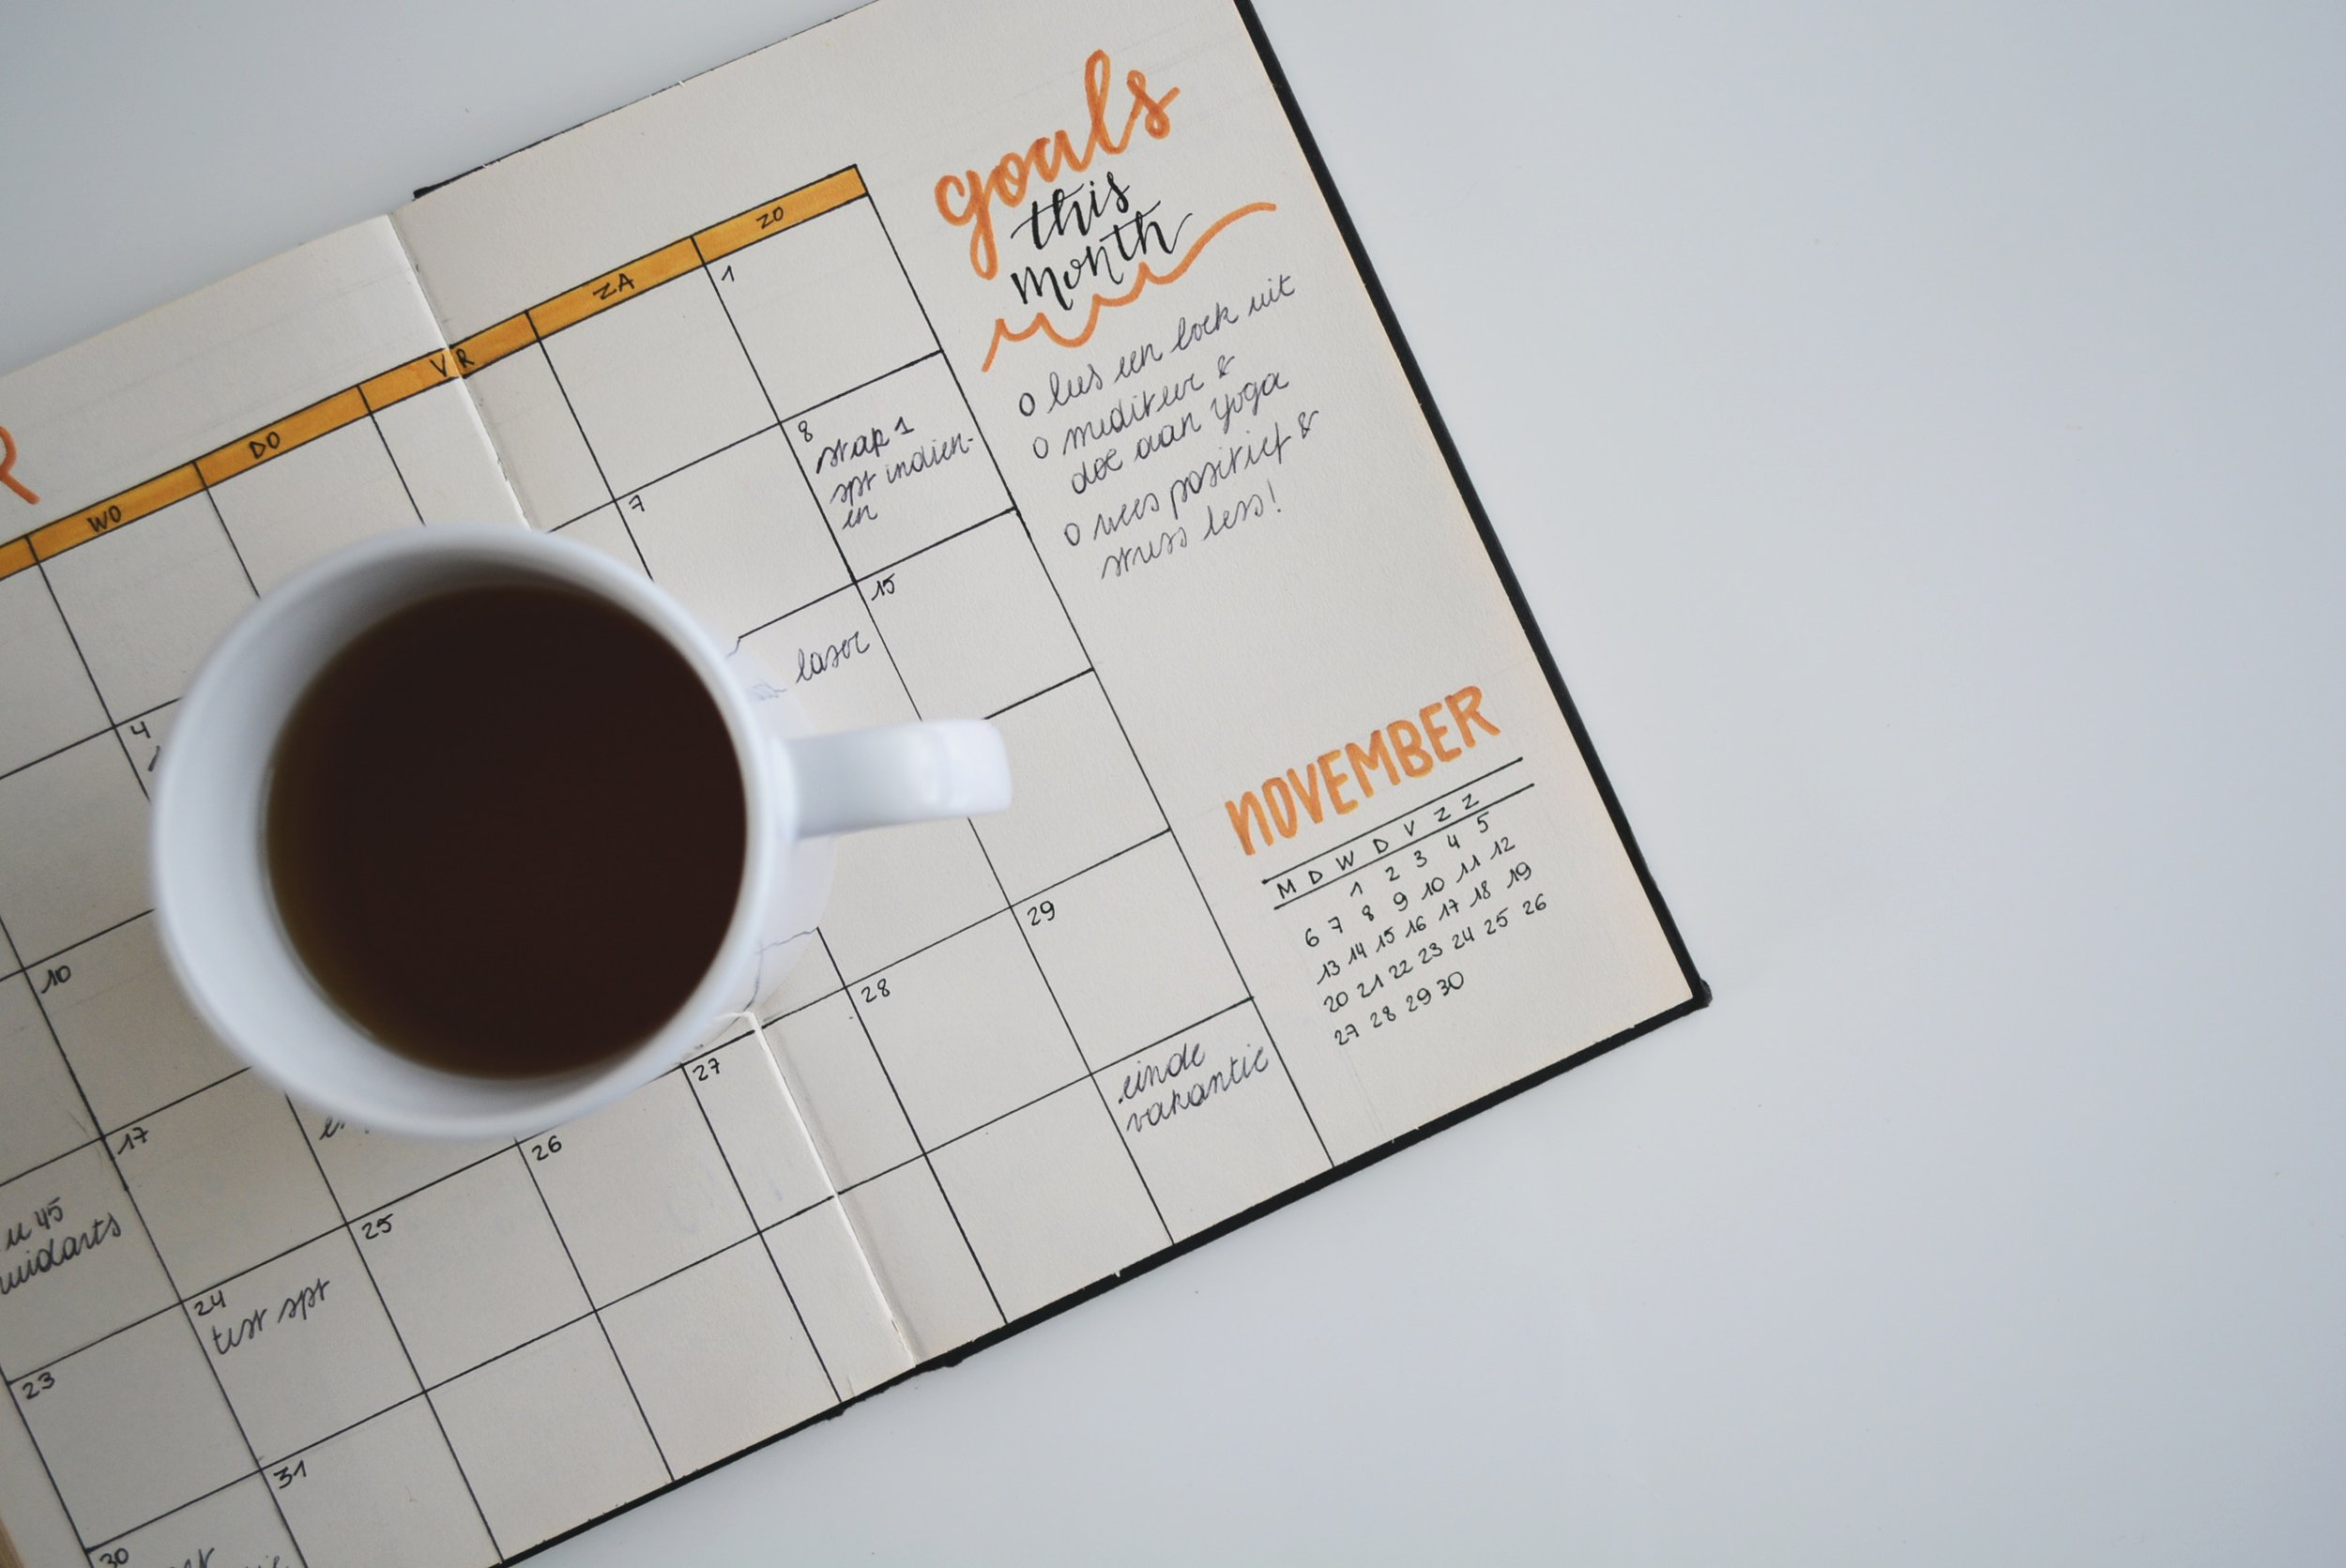 White ceramic mug with coffee on top of a planner.